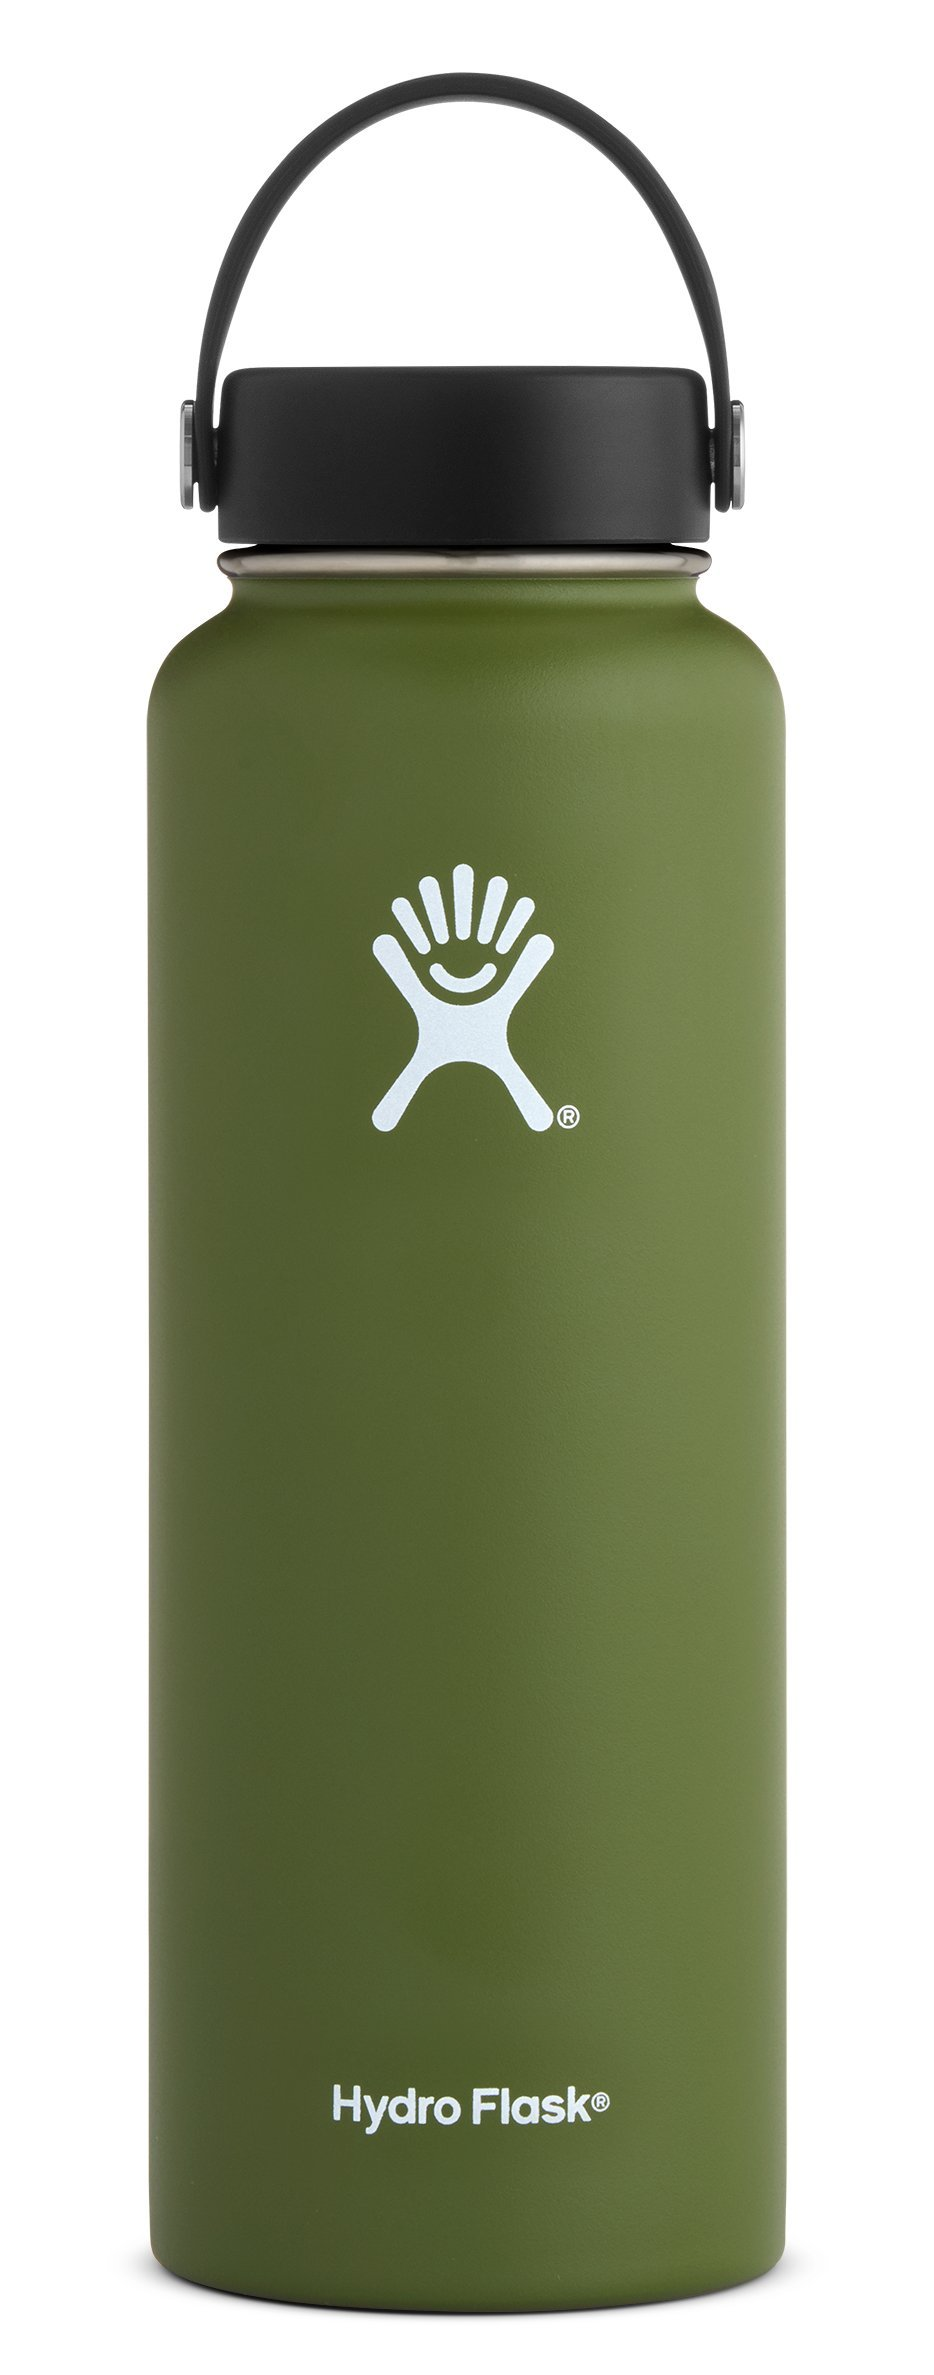 Hydro Flask 40 oz Double Wall Vacuum Insulated Stainless Steel Leak Proof Sports Water Bottle, Wide Mouth with BPA Free Flex Cap, Olive